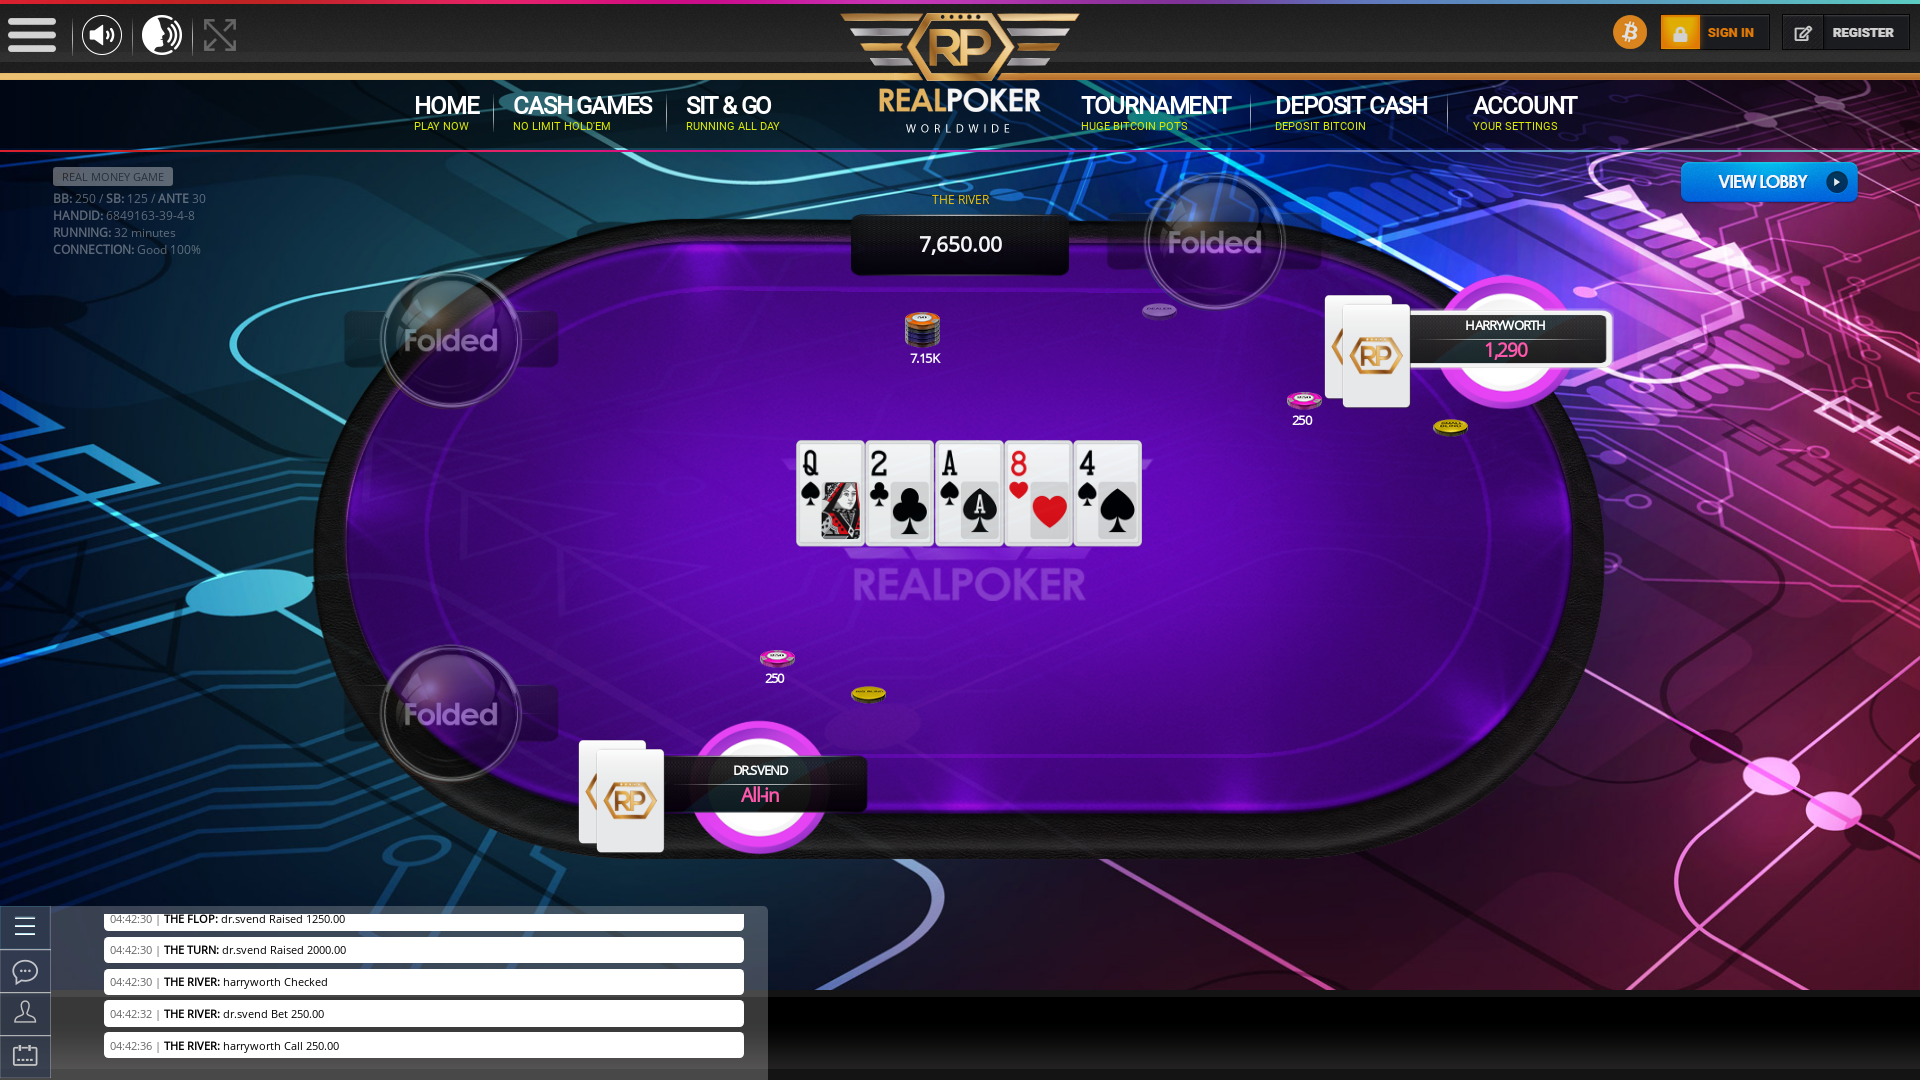 Online poker on a 10 player table in the 32nd minute match up